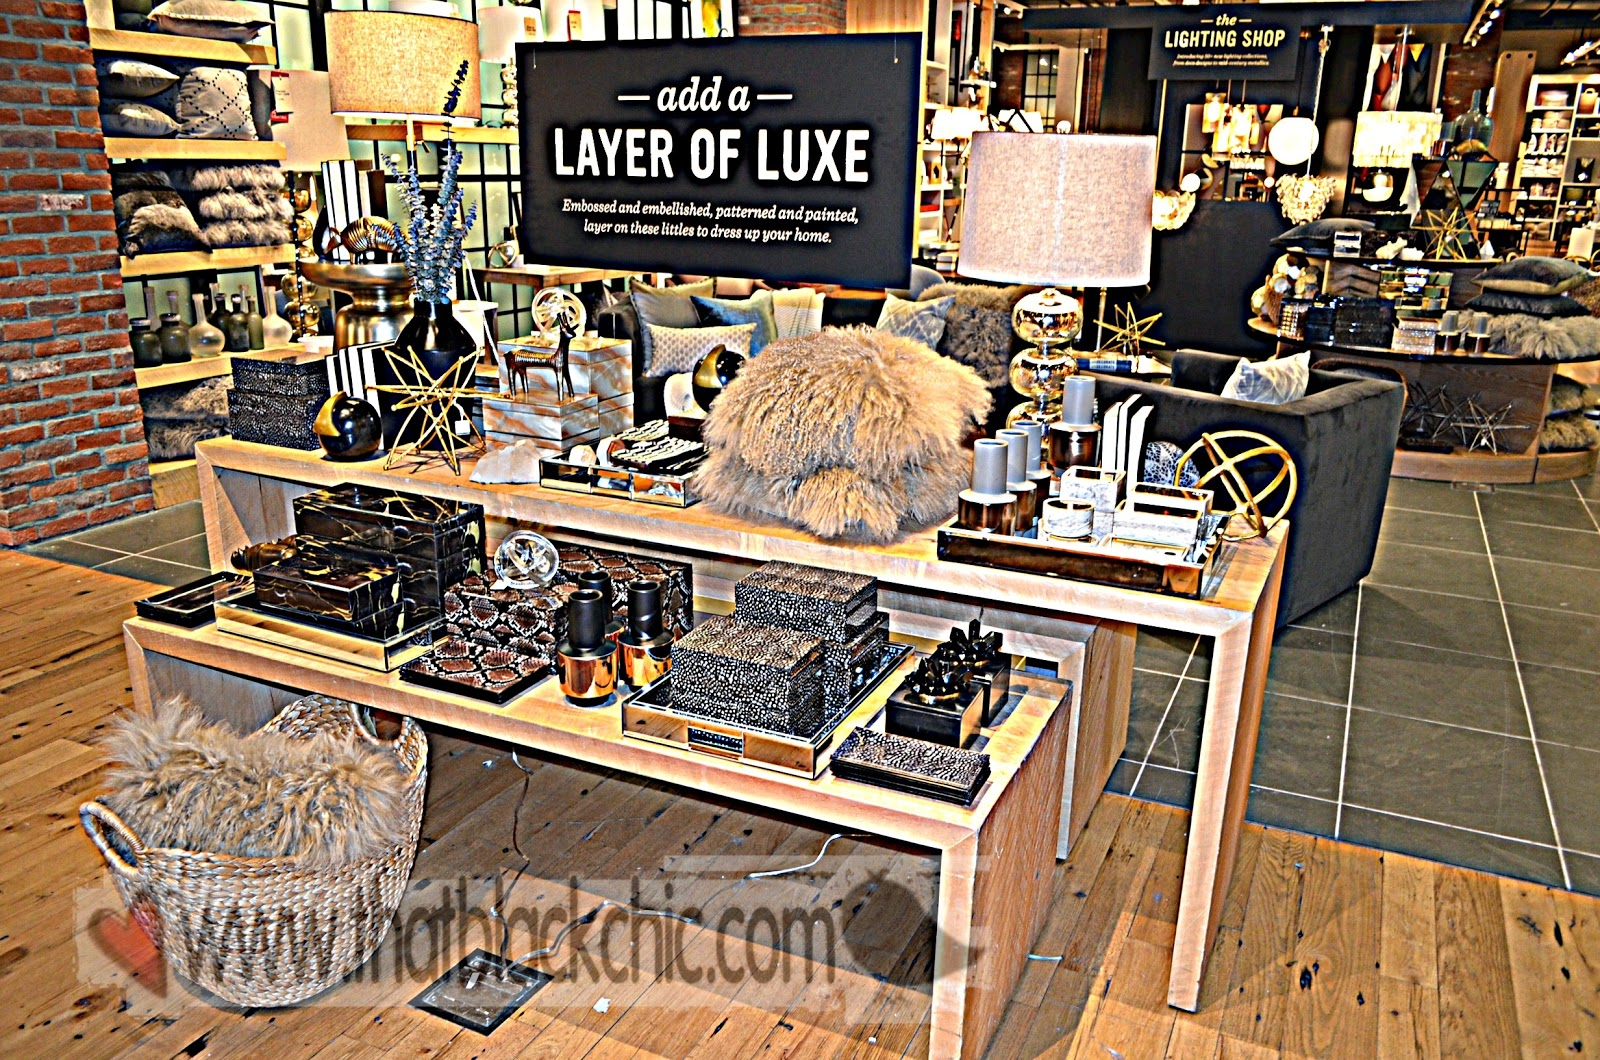 West Elm Christmas Display.Do You Know Know The Way To West Elm That Black Chic